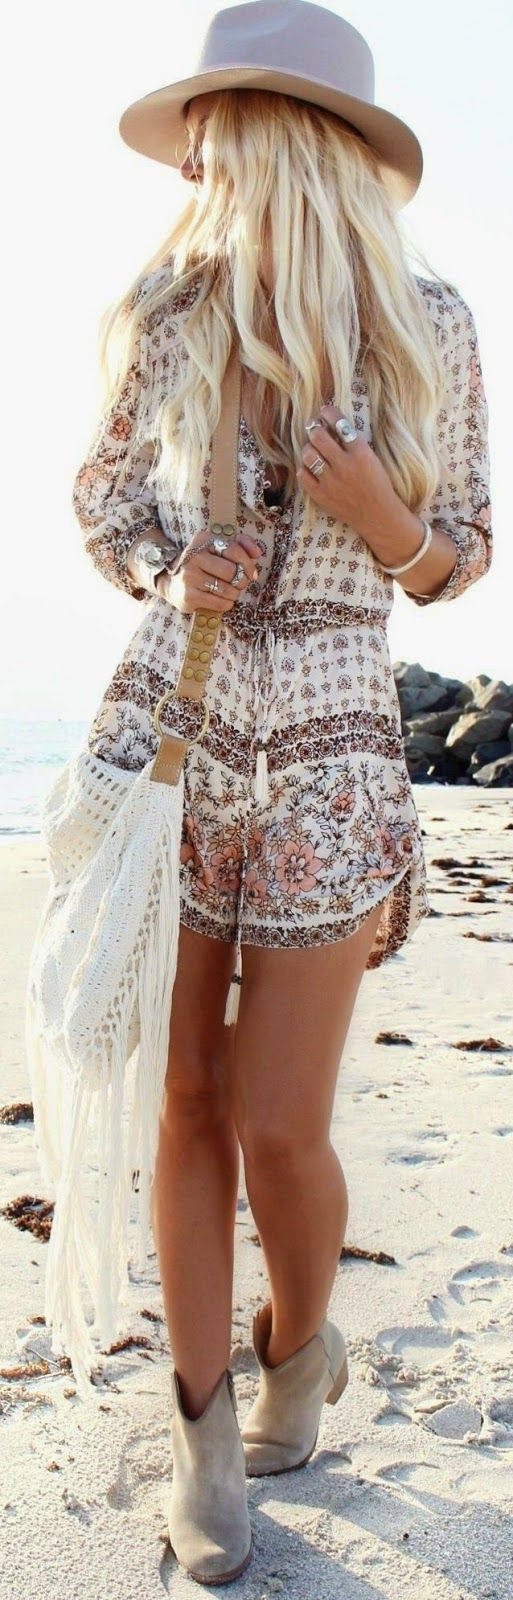 30 Gorgeous Boho Outfits To Make You Look Glam as featured on Pasaboho. ❤️:: boho fashion :: gypsy style :: hippie chic :: boho chic :: outfit ideas :: boho clothing :: free spirit :: fashion trend :: embroidered :: flowers :: floral :: lace :: summer :: fabulous :: love :: street style :: fashion style :: boho style :: bohemian :: modern vintage :: ethnic tribal :: boho bags :: embroidery dress :: skirt :: cardigans :: jacket :: sweater :: tops